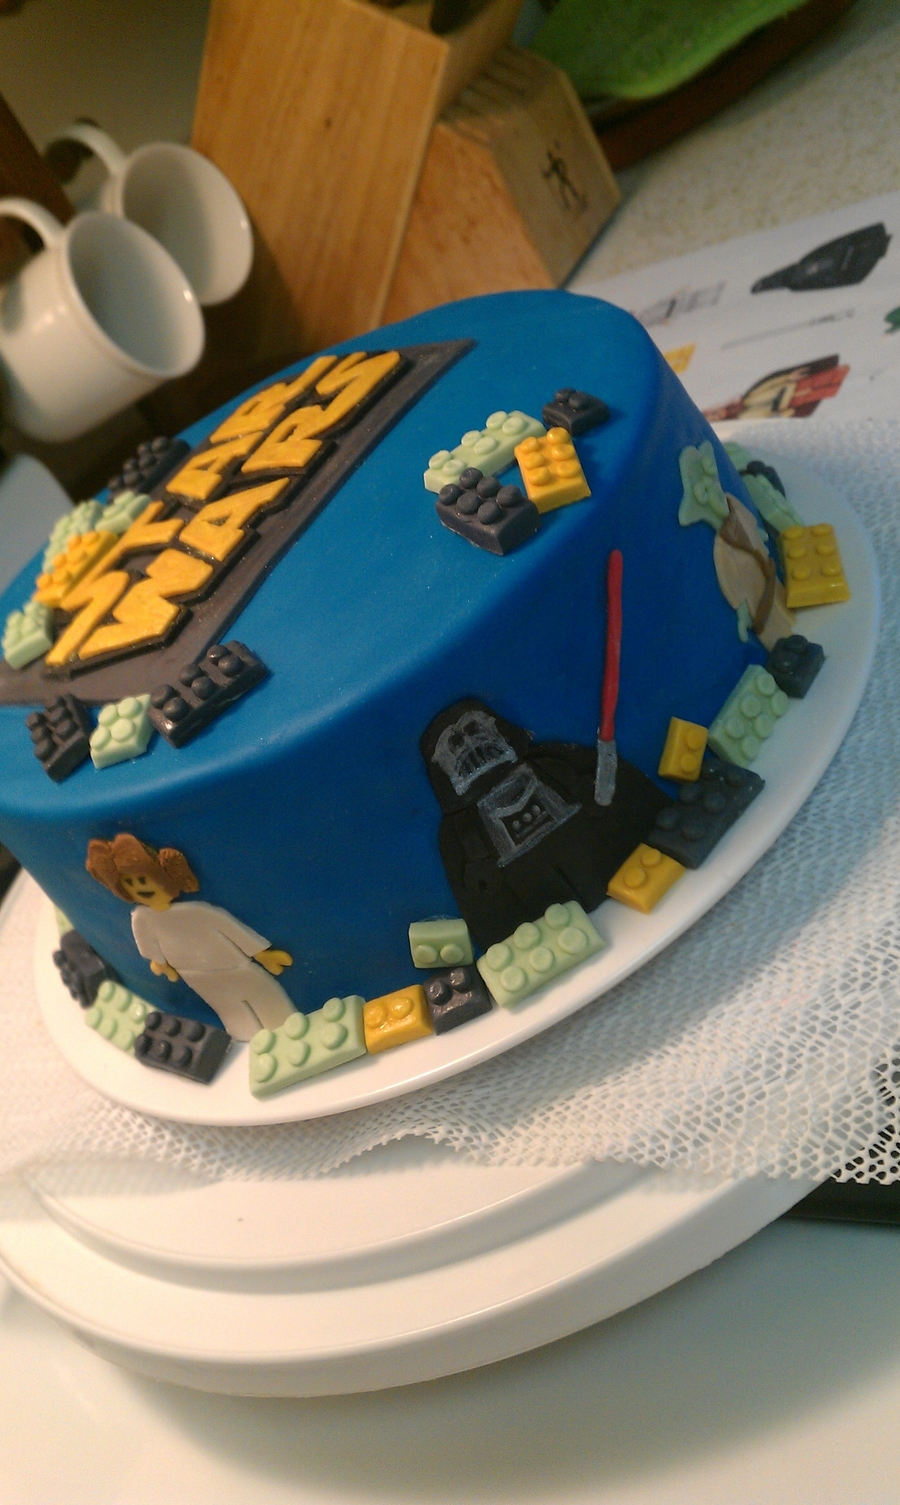 Lego Star Wars Cake Decorations